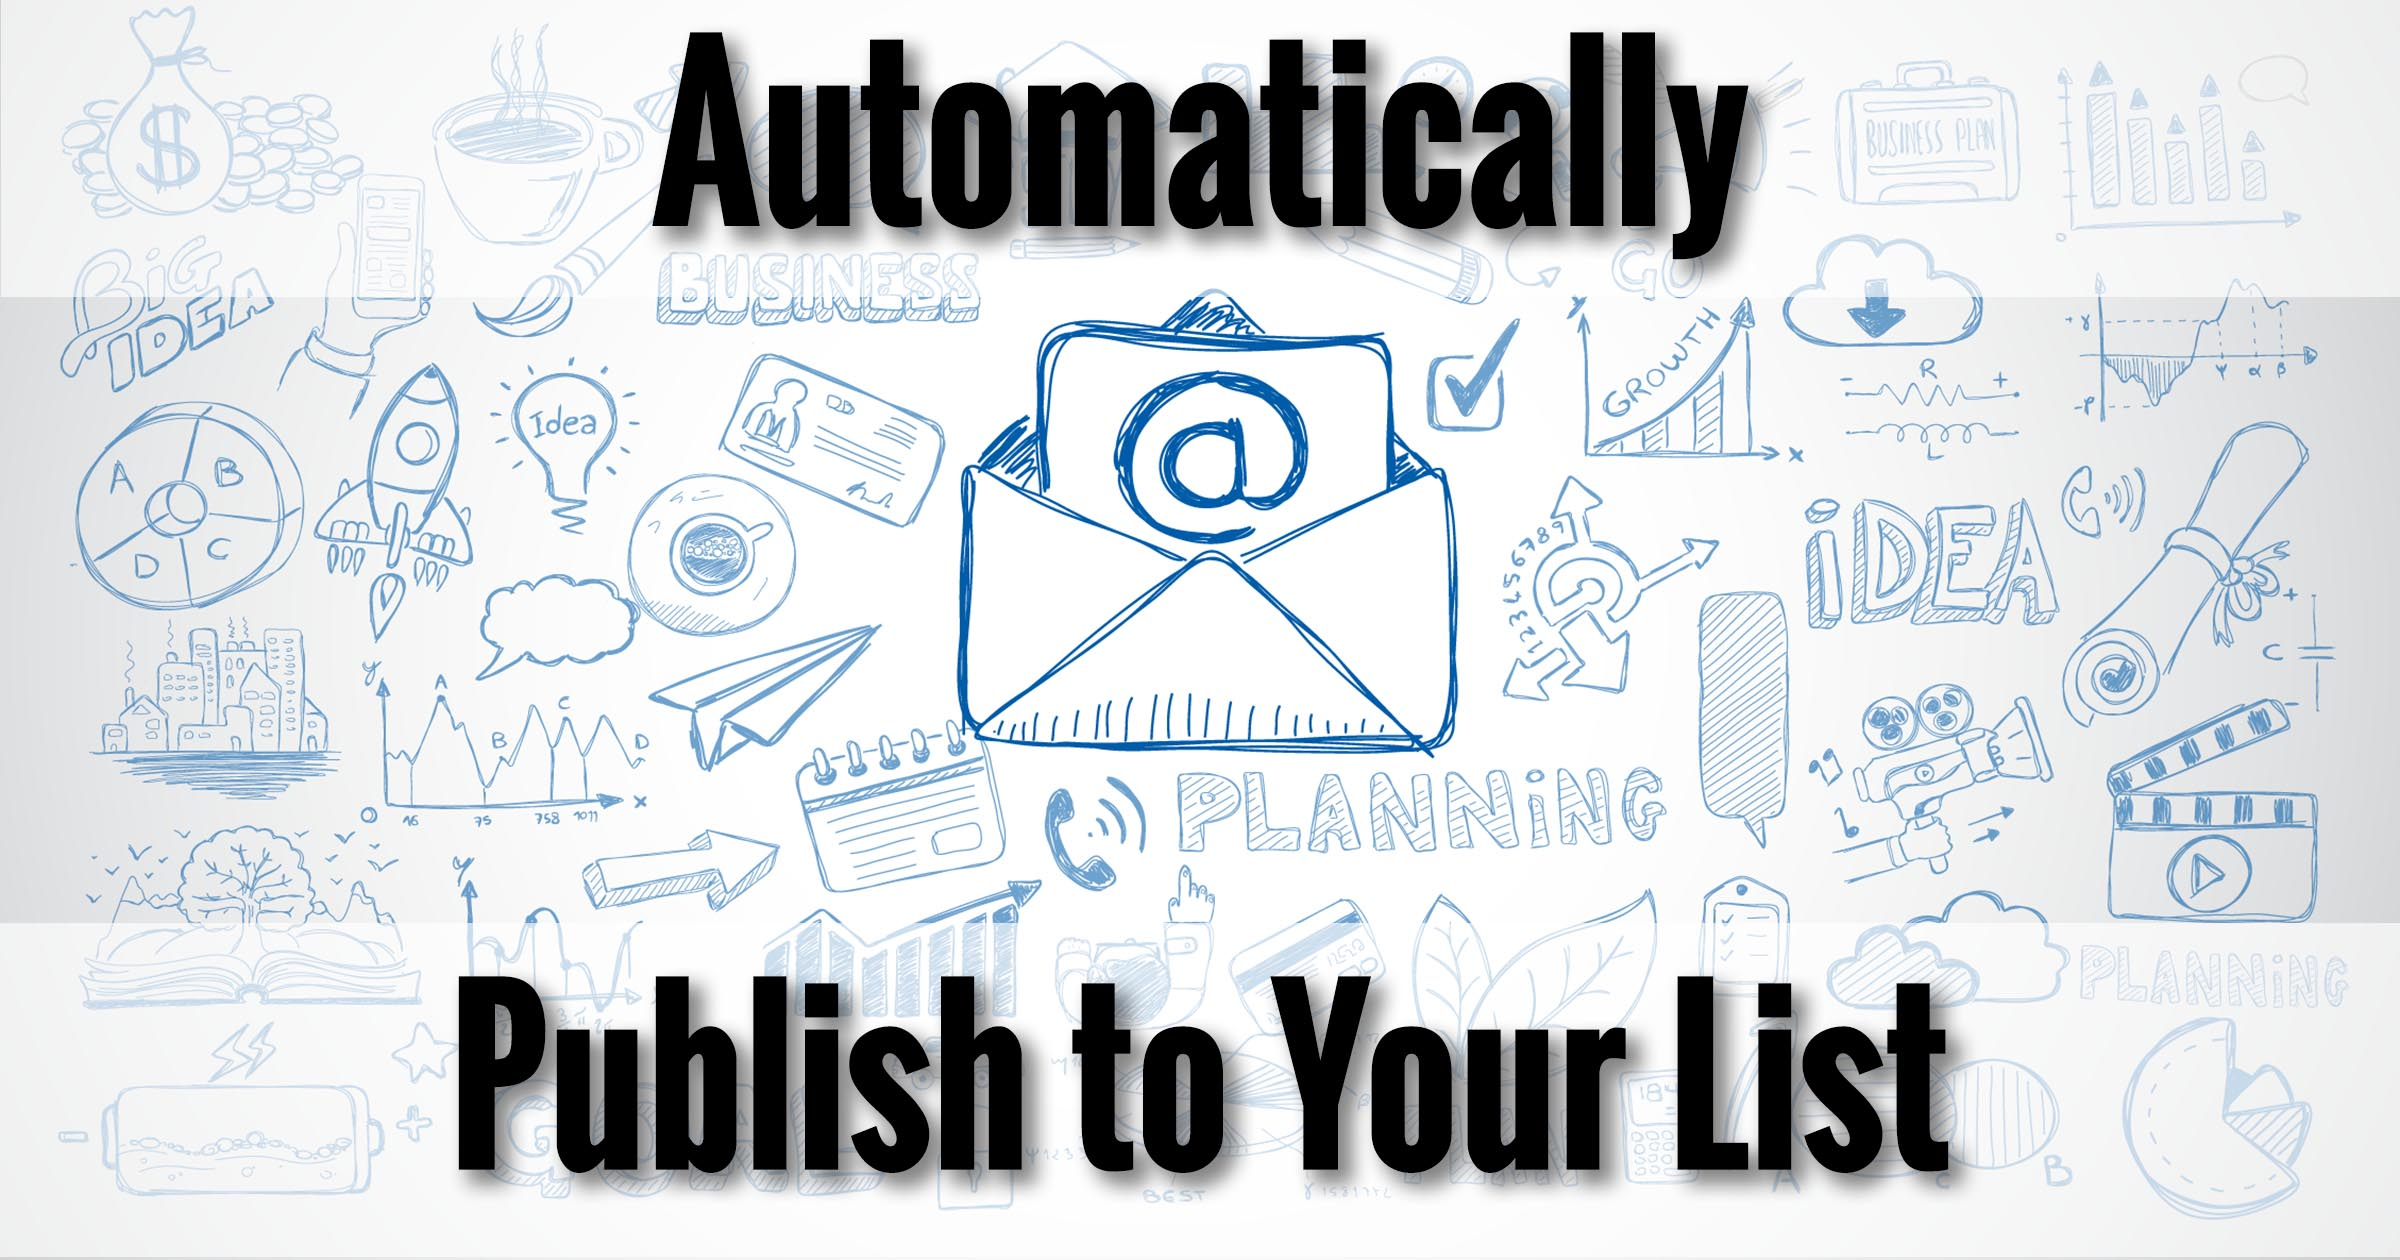 Automatically Publish to Your List